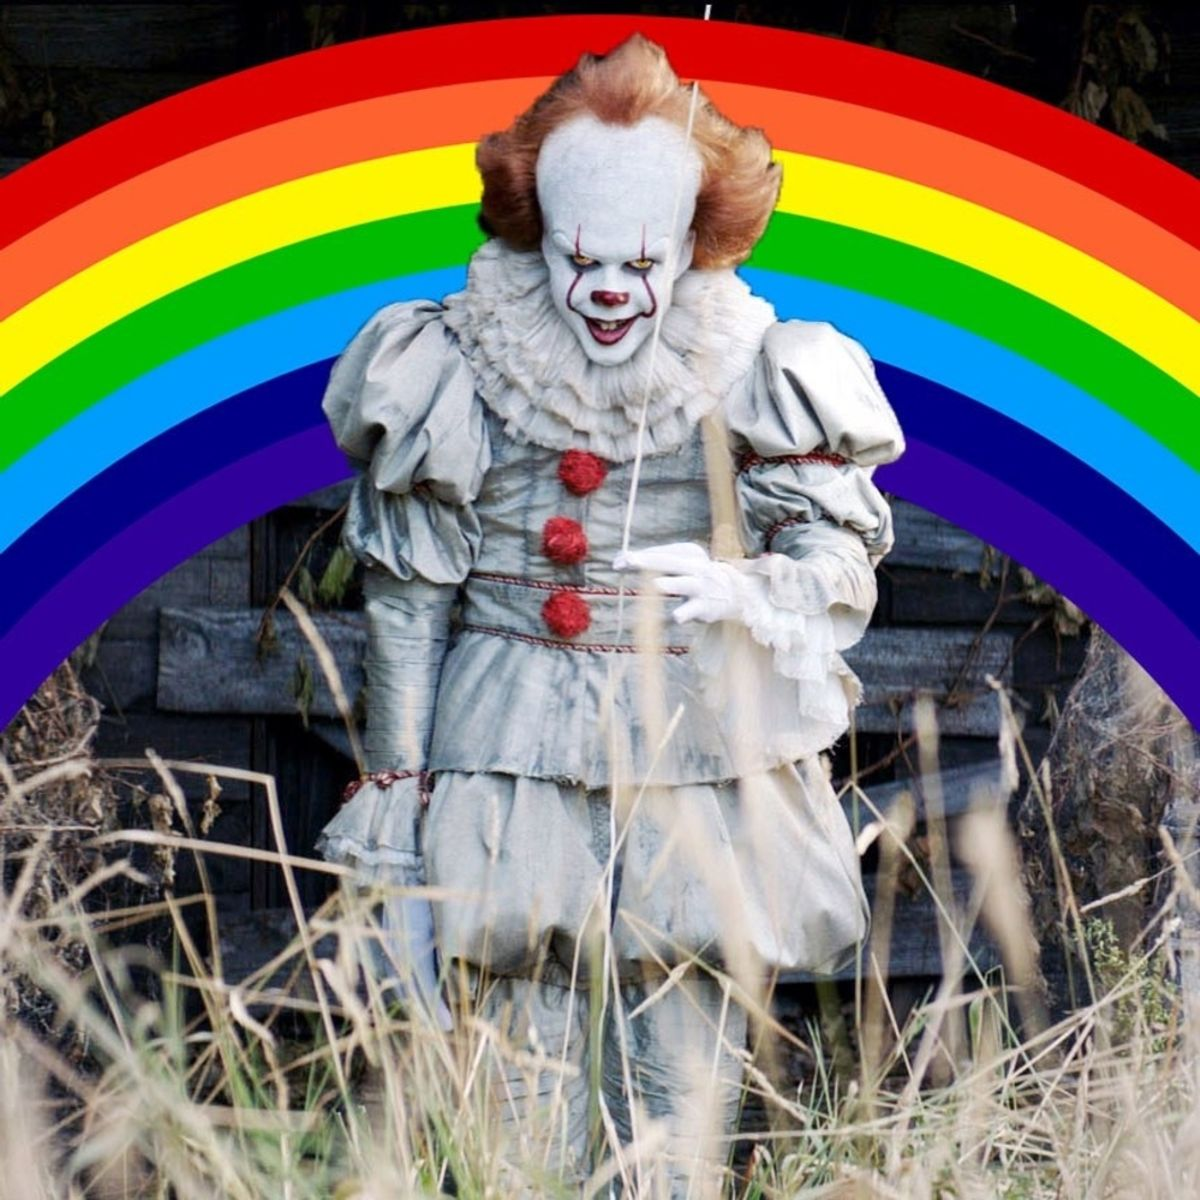 Pennywise Is Not Gay